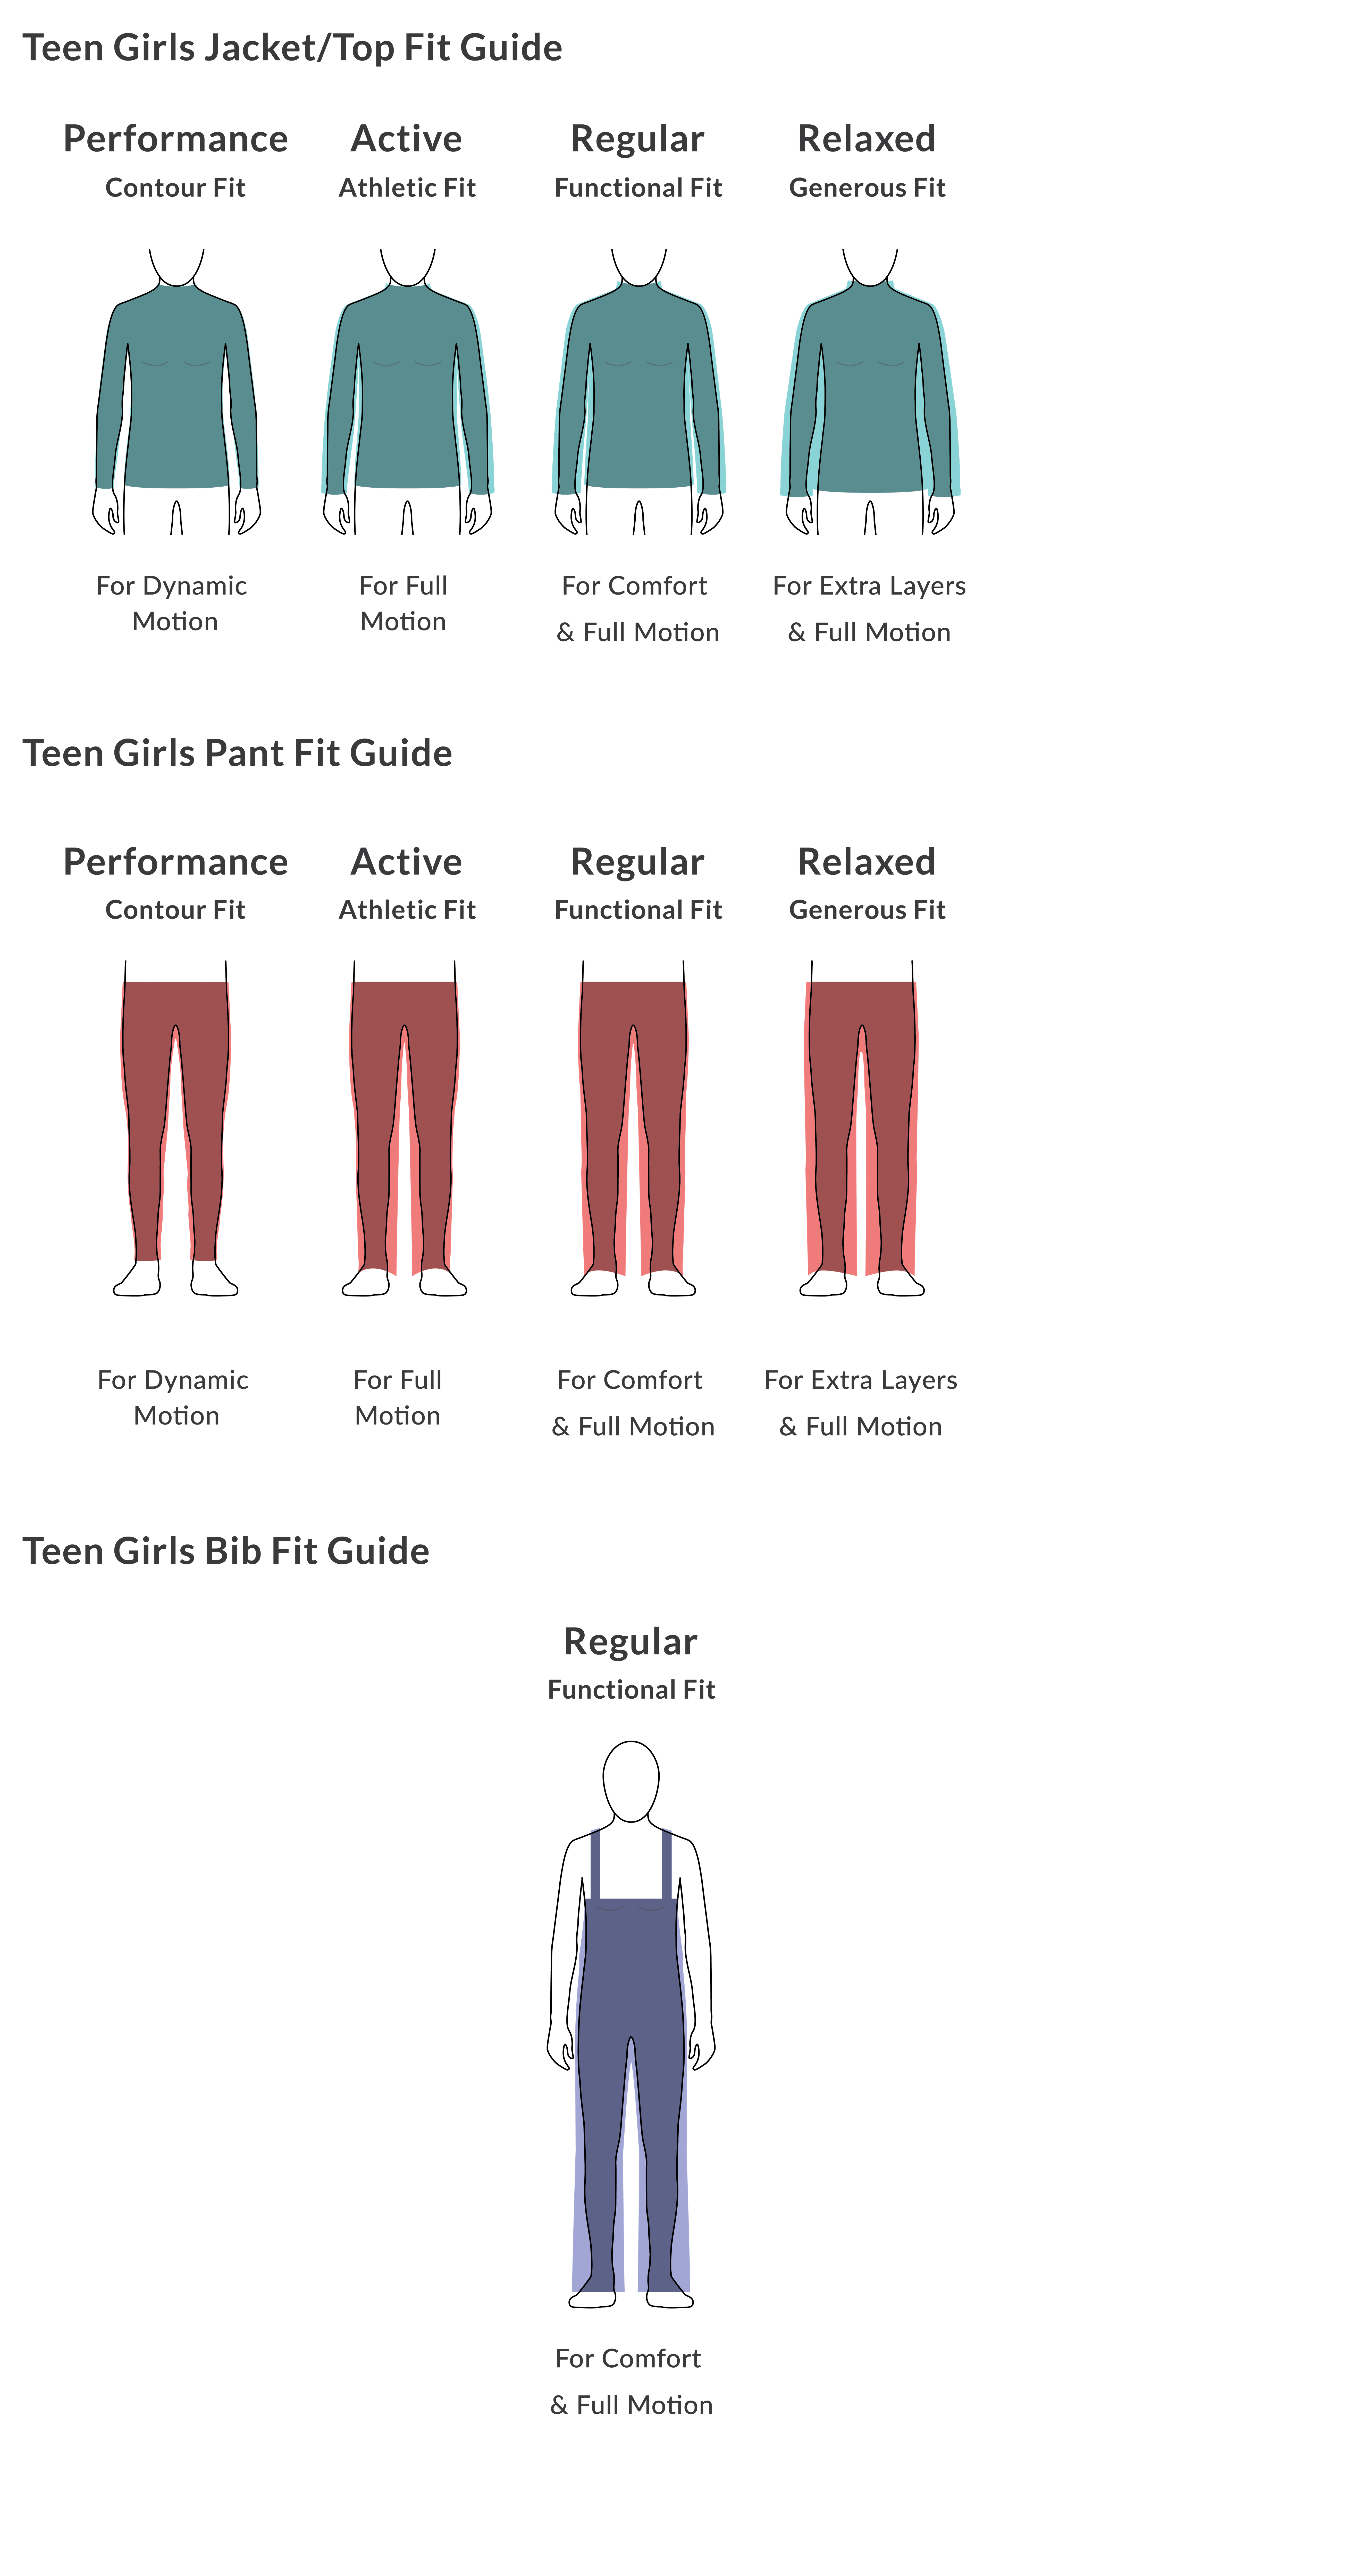 Teen Girl's Fit Guide